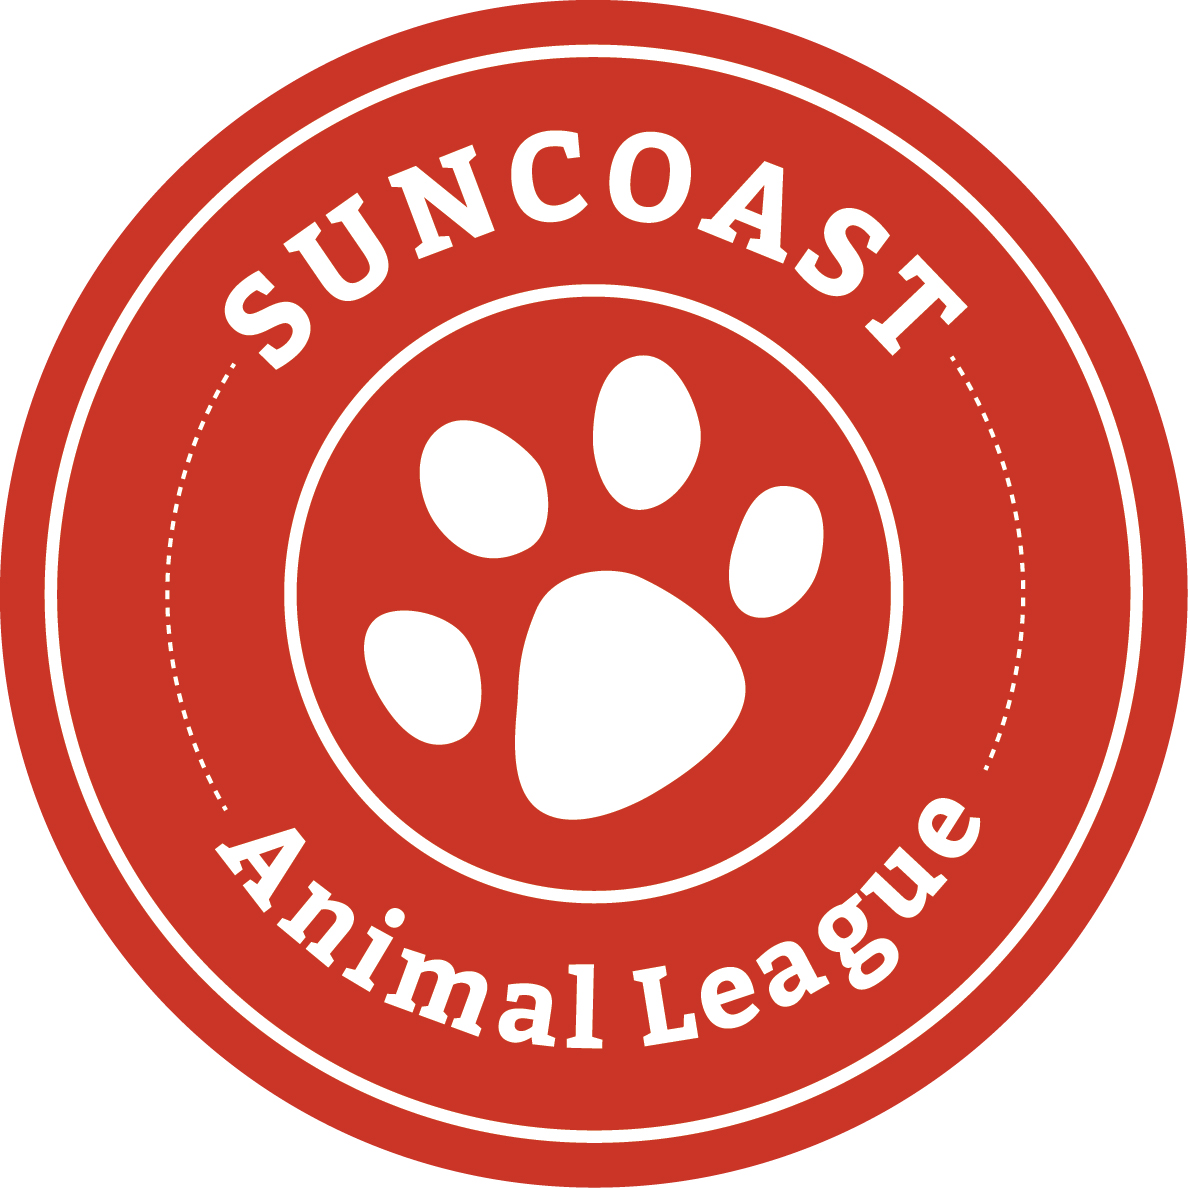 Suncoast Animal League